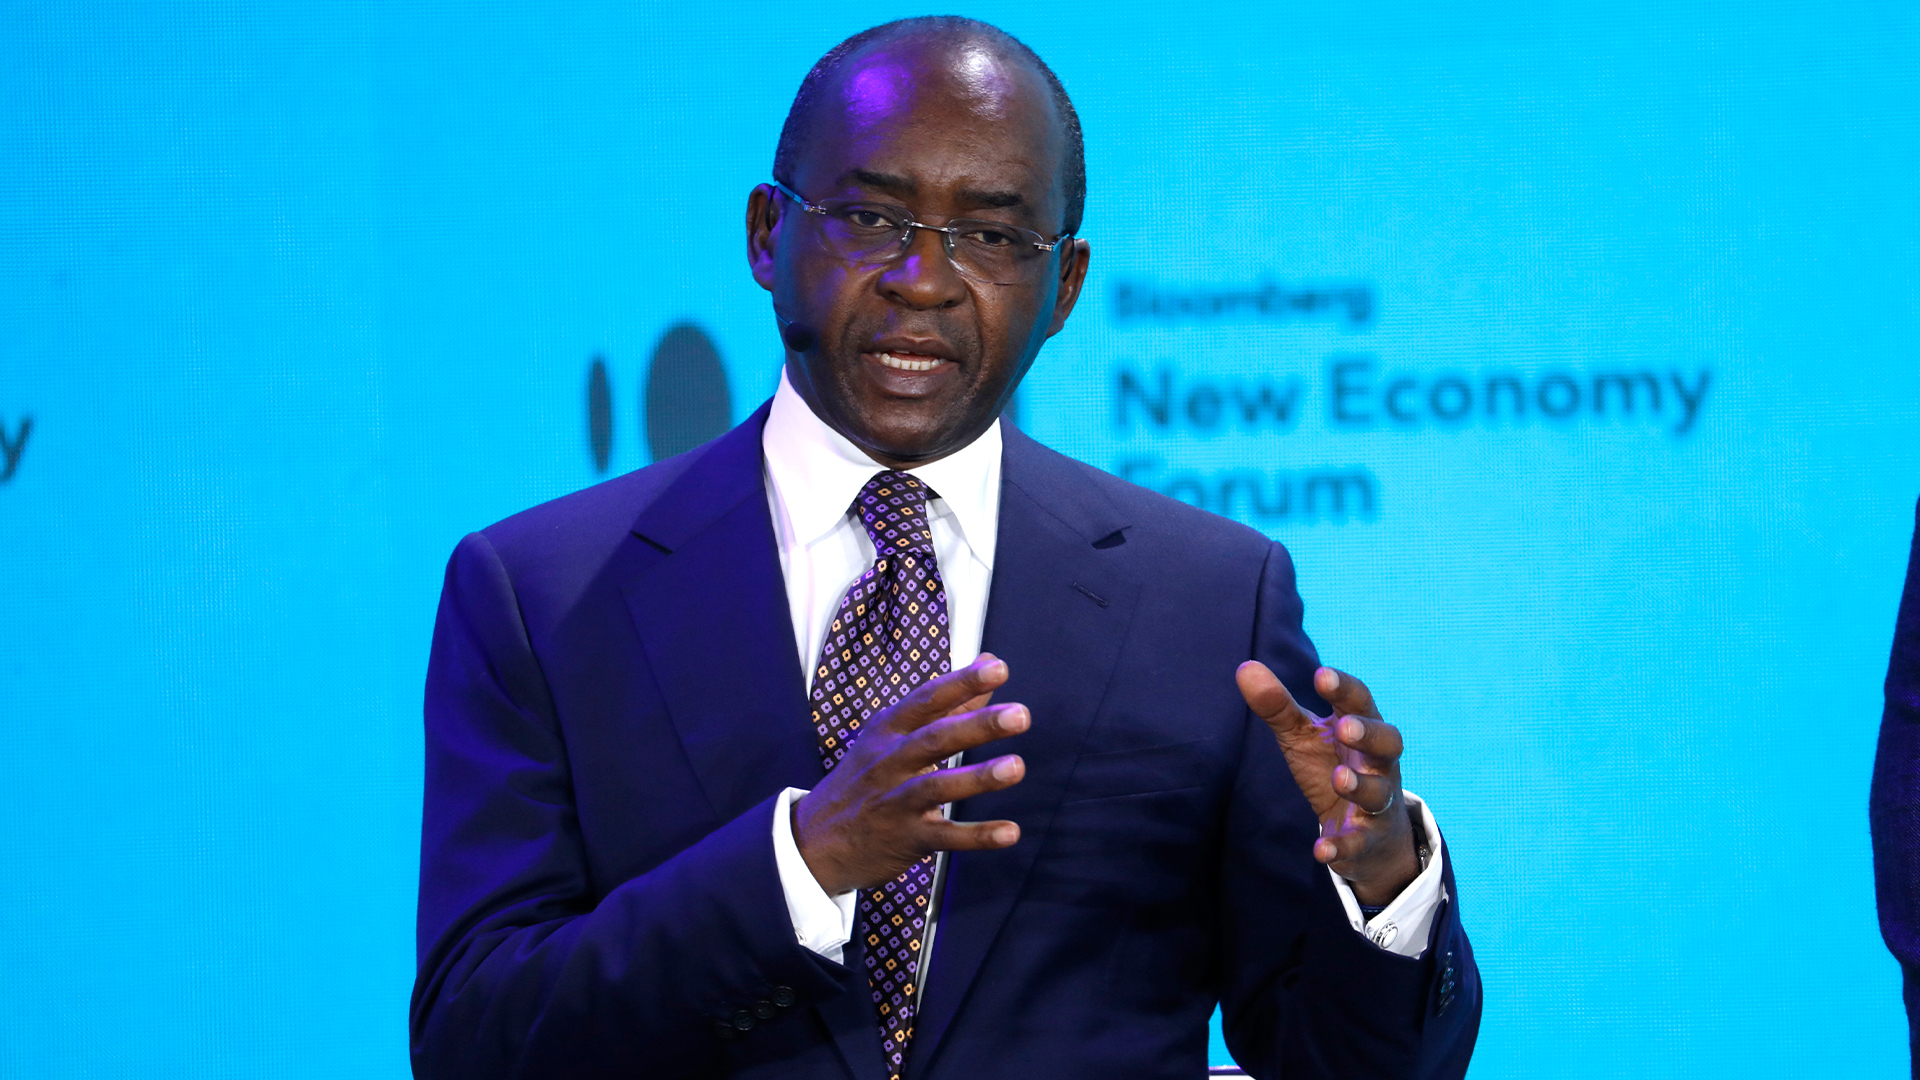 Strive Masiyiwa Net Worth: Here's What Britain's First Black Billionaire Is Up To As A Coronavirus Envoy